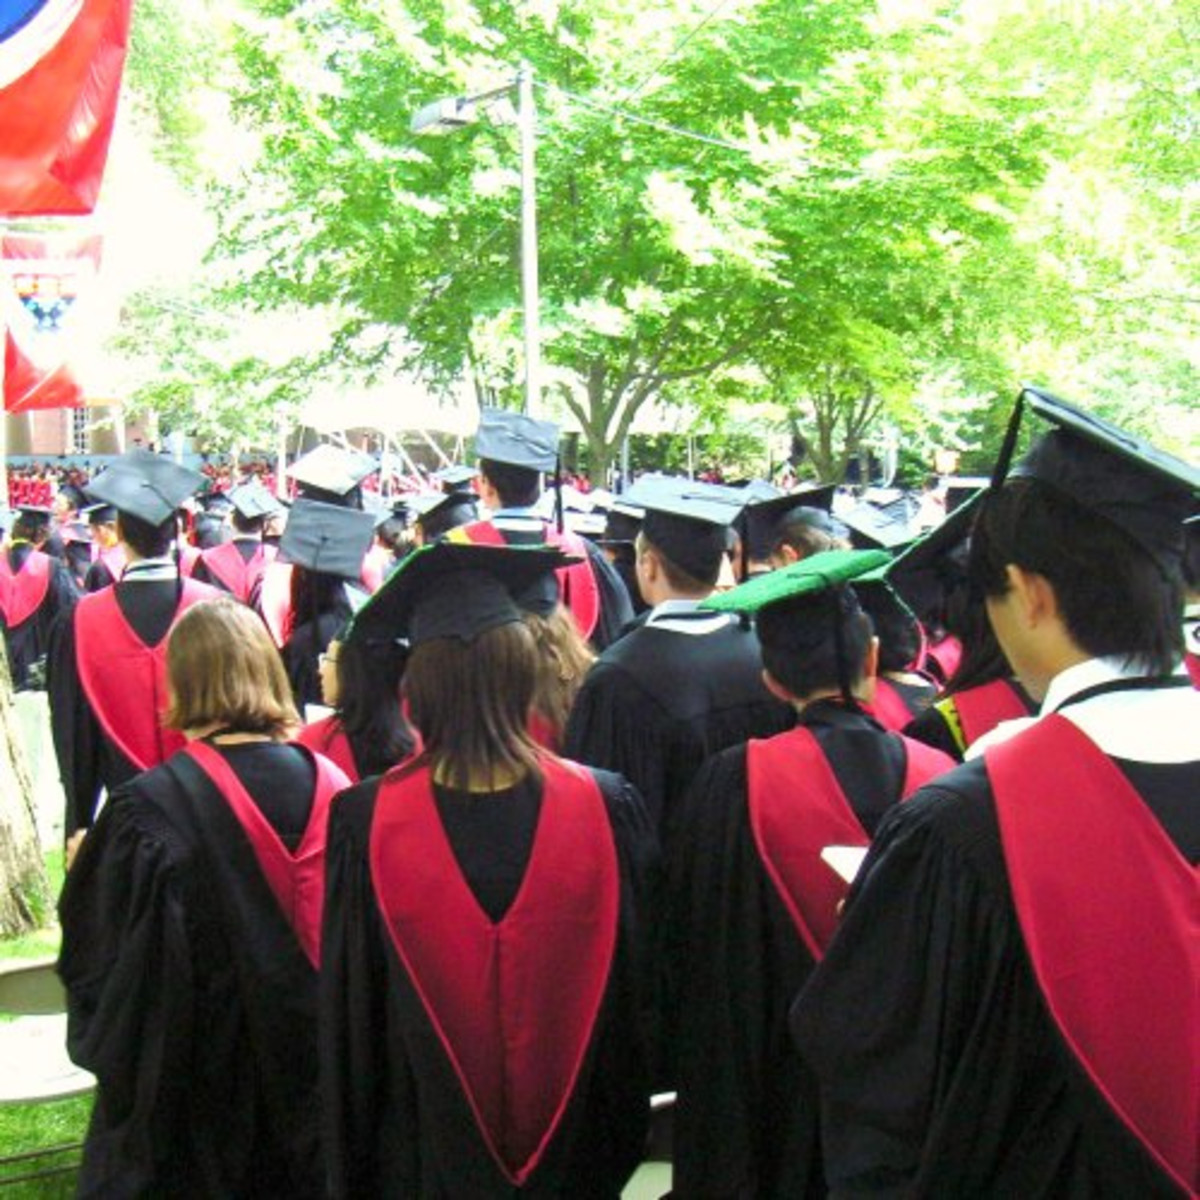 Harvard Commencement - graduates by Ginas Pics.